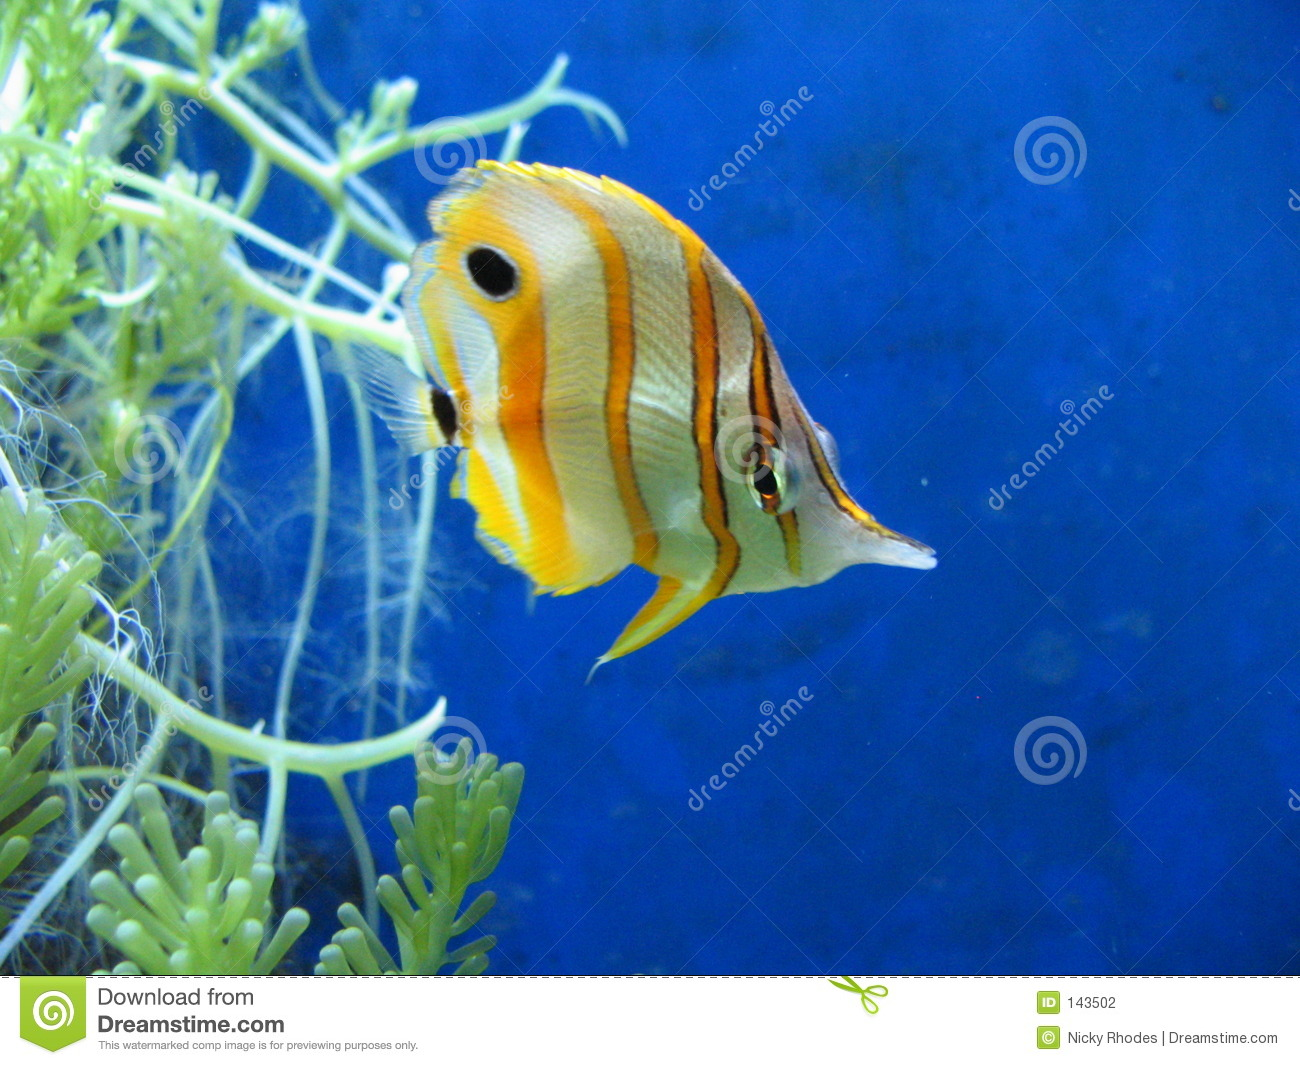 Poissons tropicaux photo stock image du aquarium for Poisson tropicaux pour aquarium